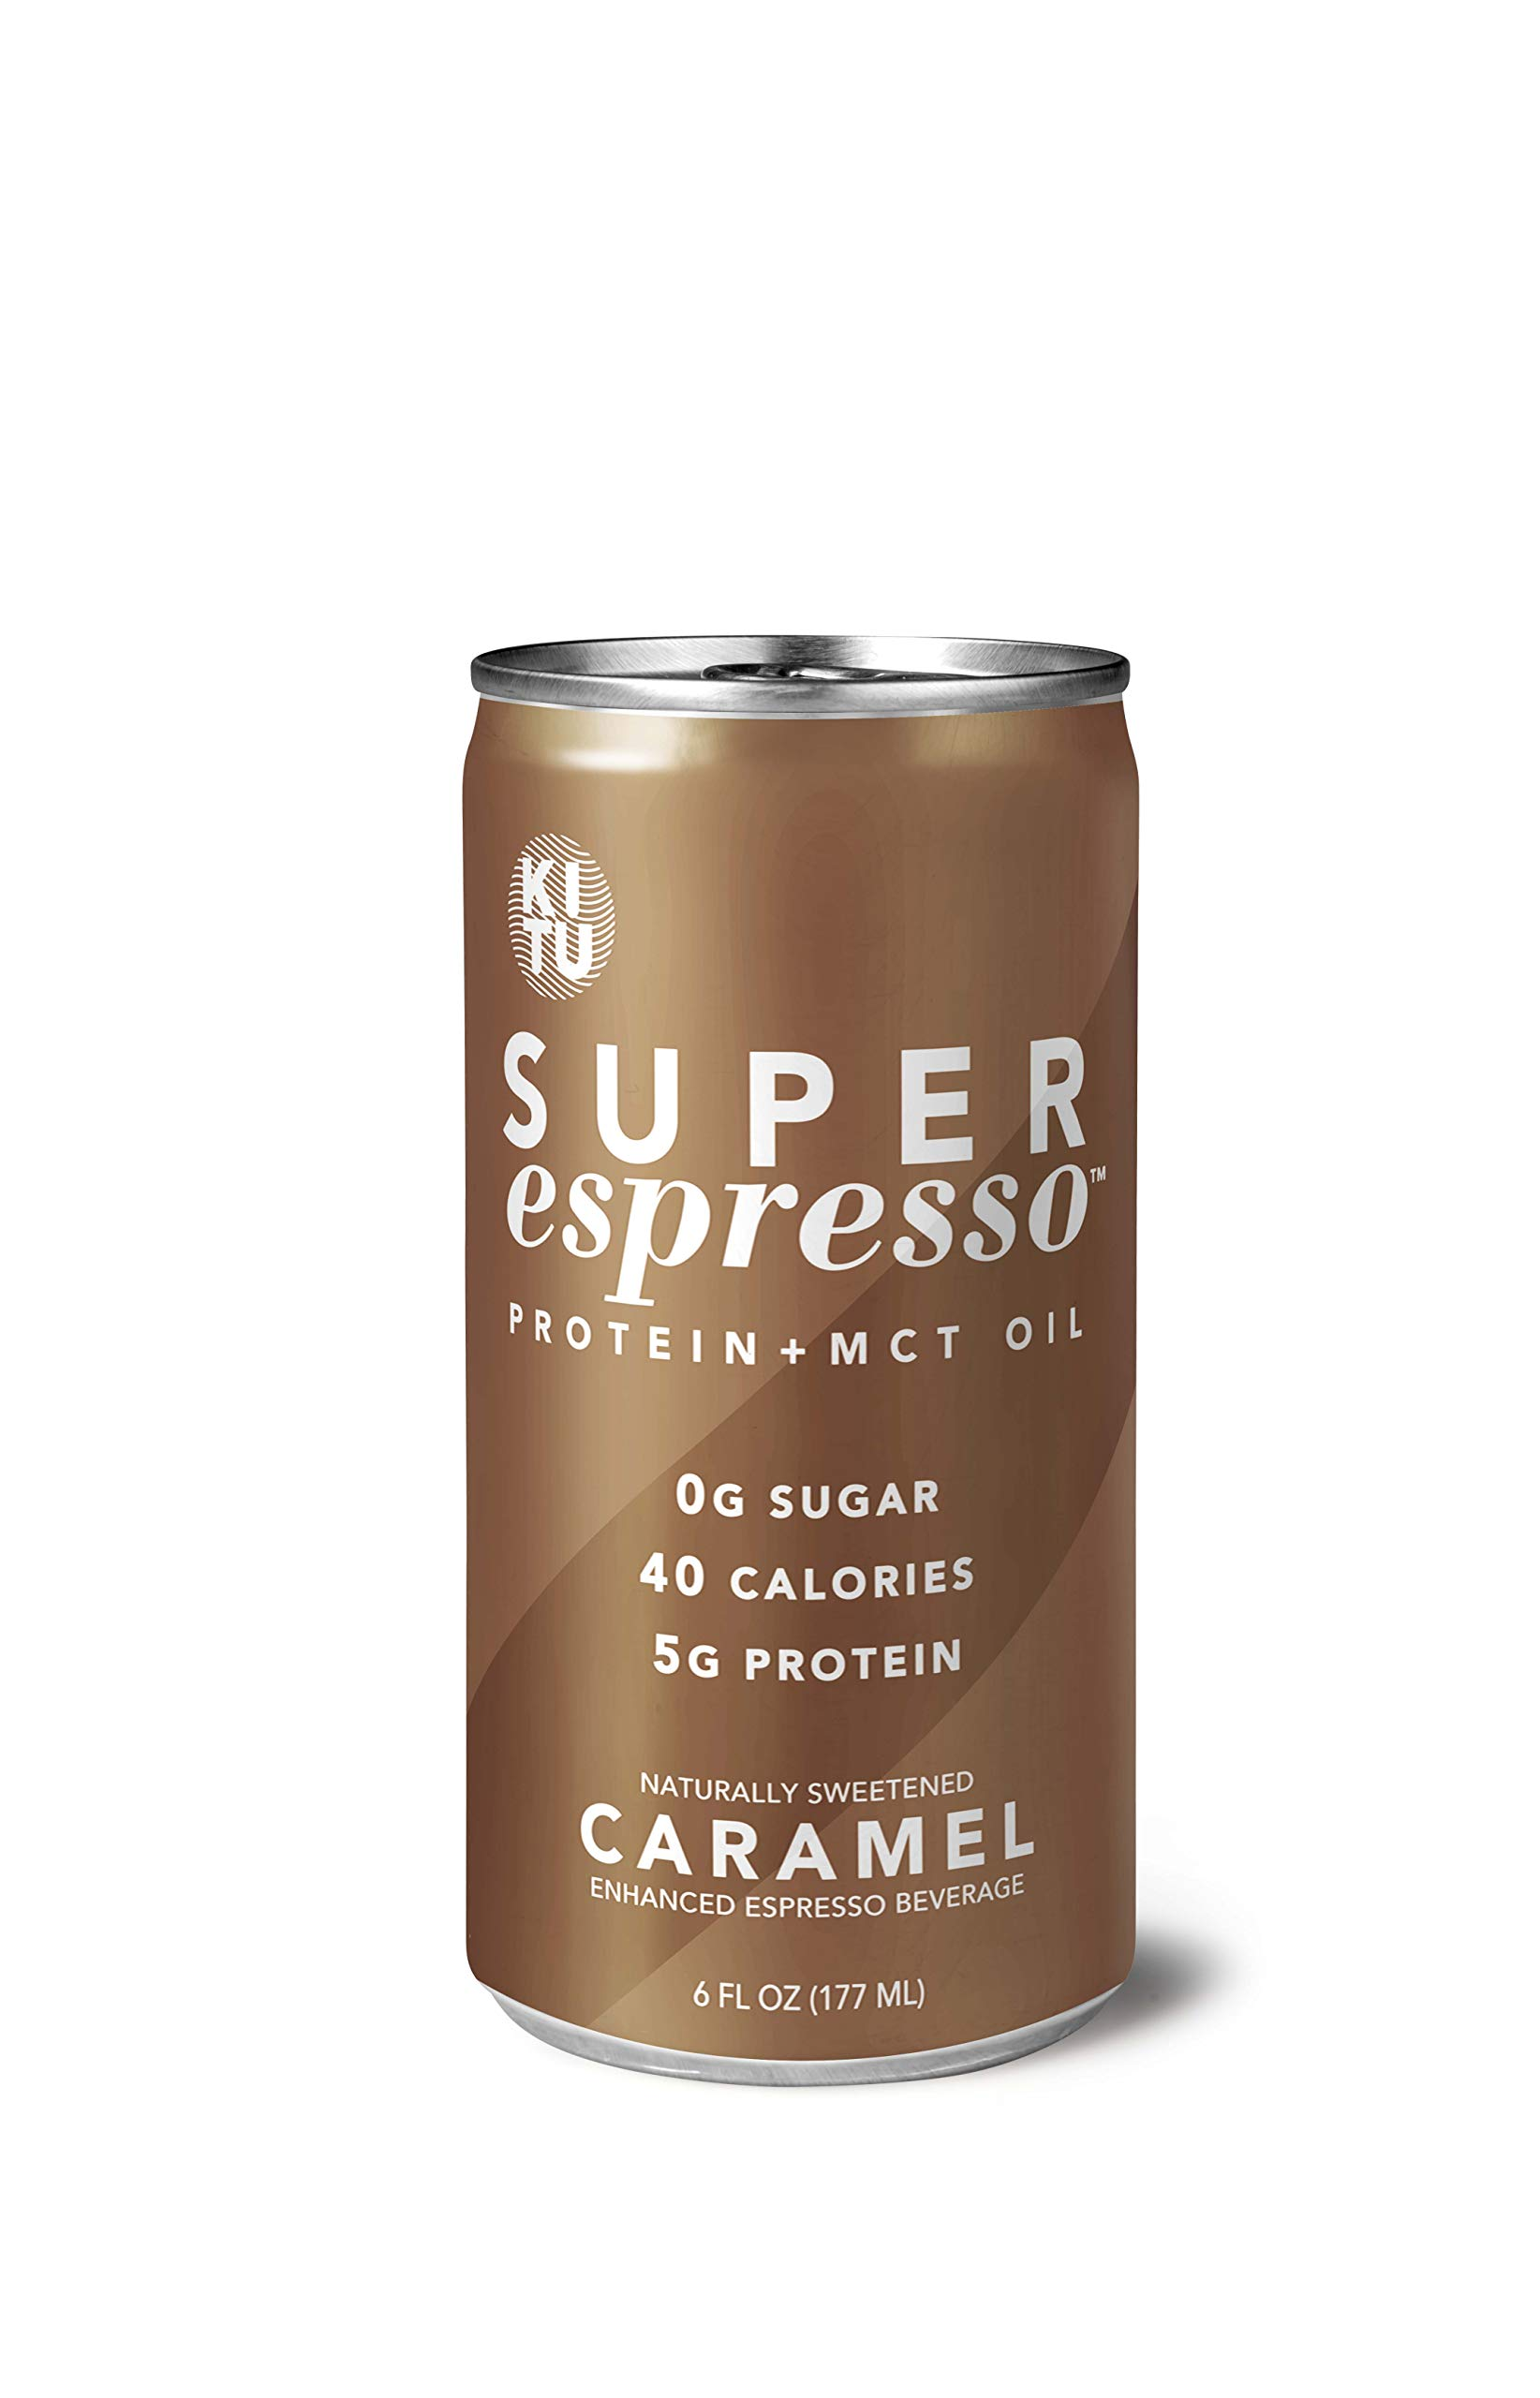 Kitu by SUNNIVA Caramel Super Espresso with Protein and MCT Oil, Keto Approved, 0g Sugar, 5g Protein, 40 Calories, 6 fl. oz, Pack of 12 by SUNNIVA SUPER COFFEE